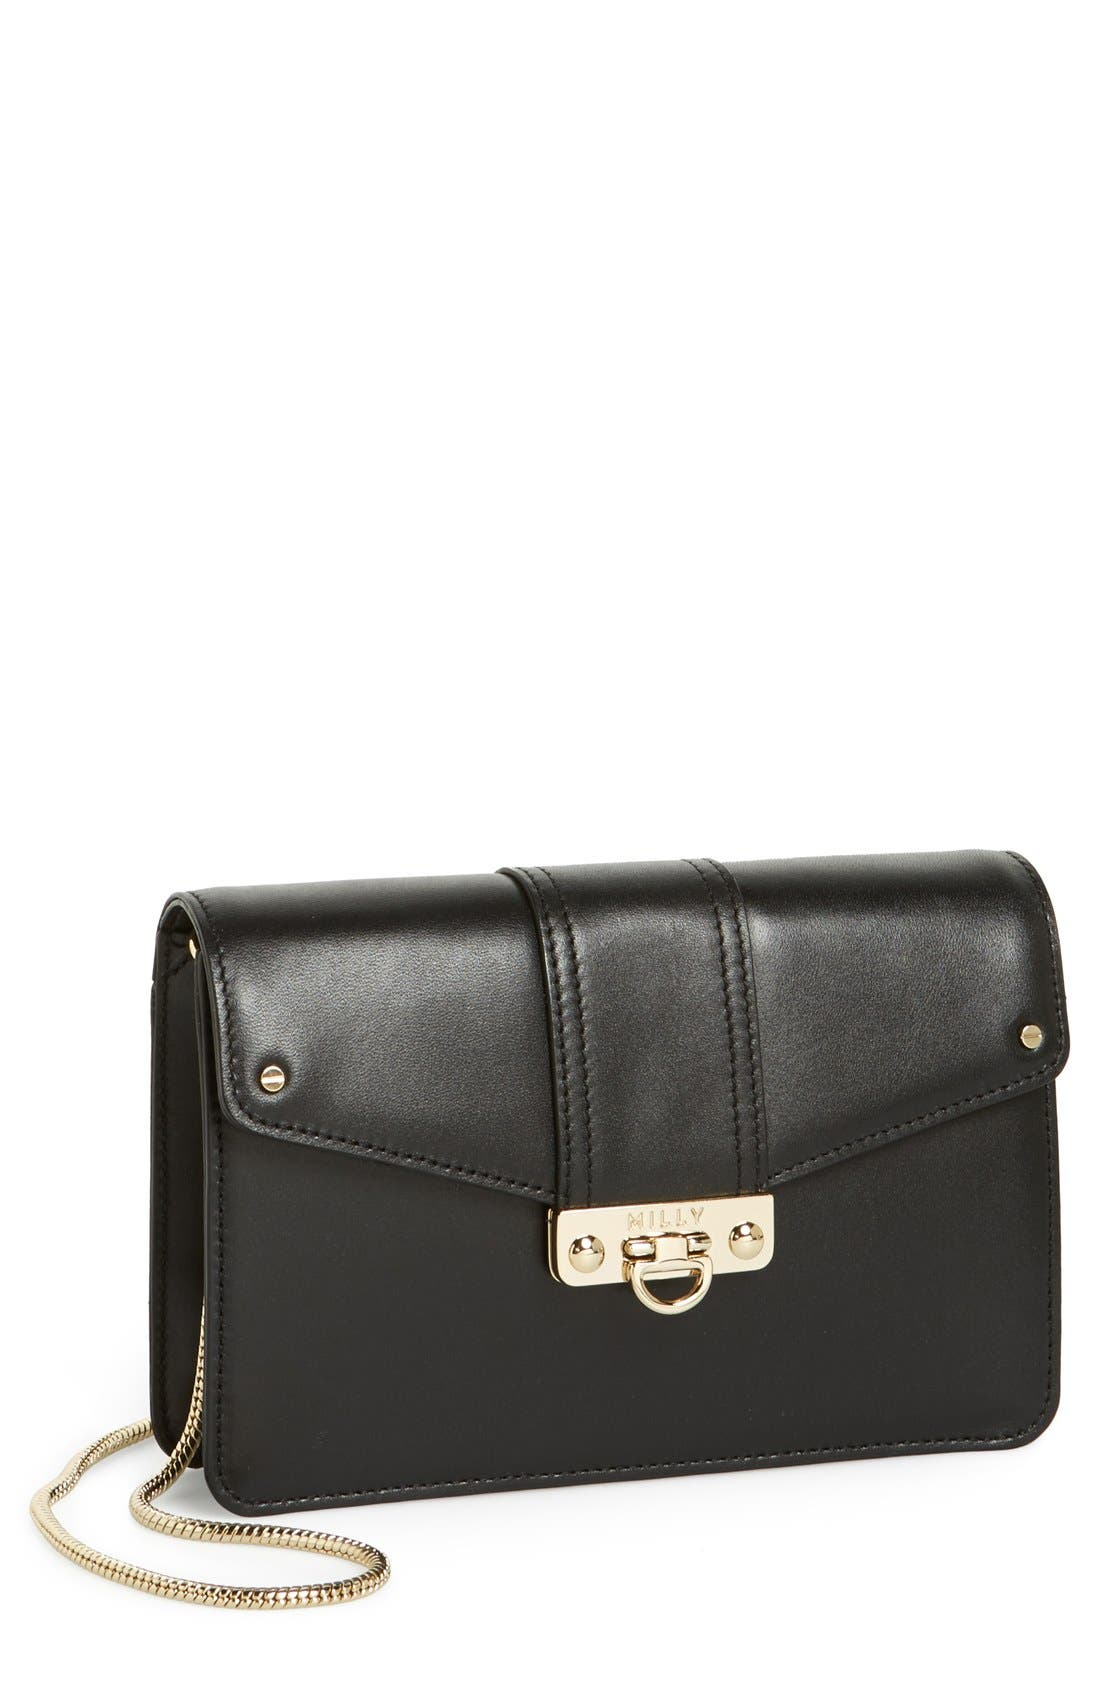 Alternate Image 1 Selected - Milly 'Mini Bryant' Leather Crossbody Bag